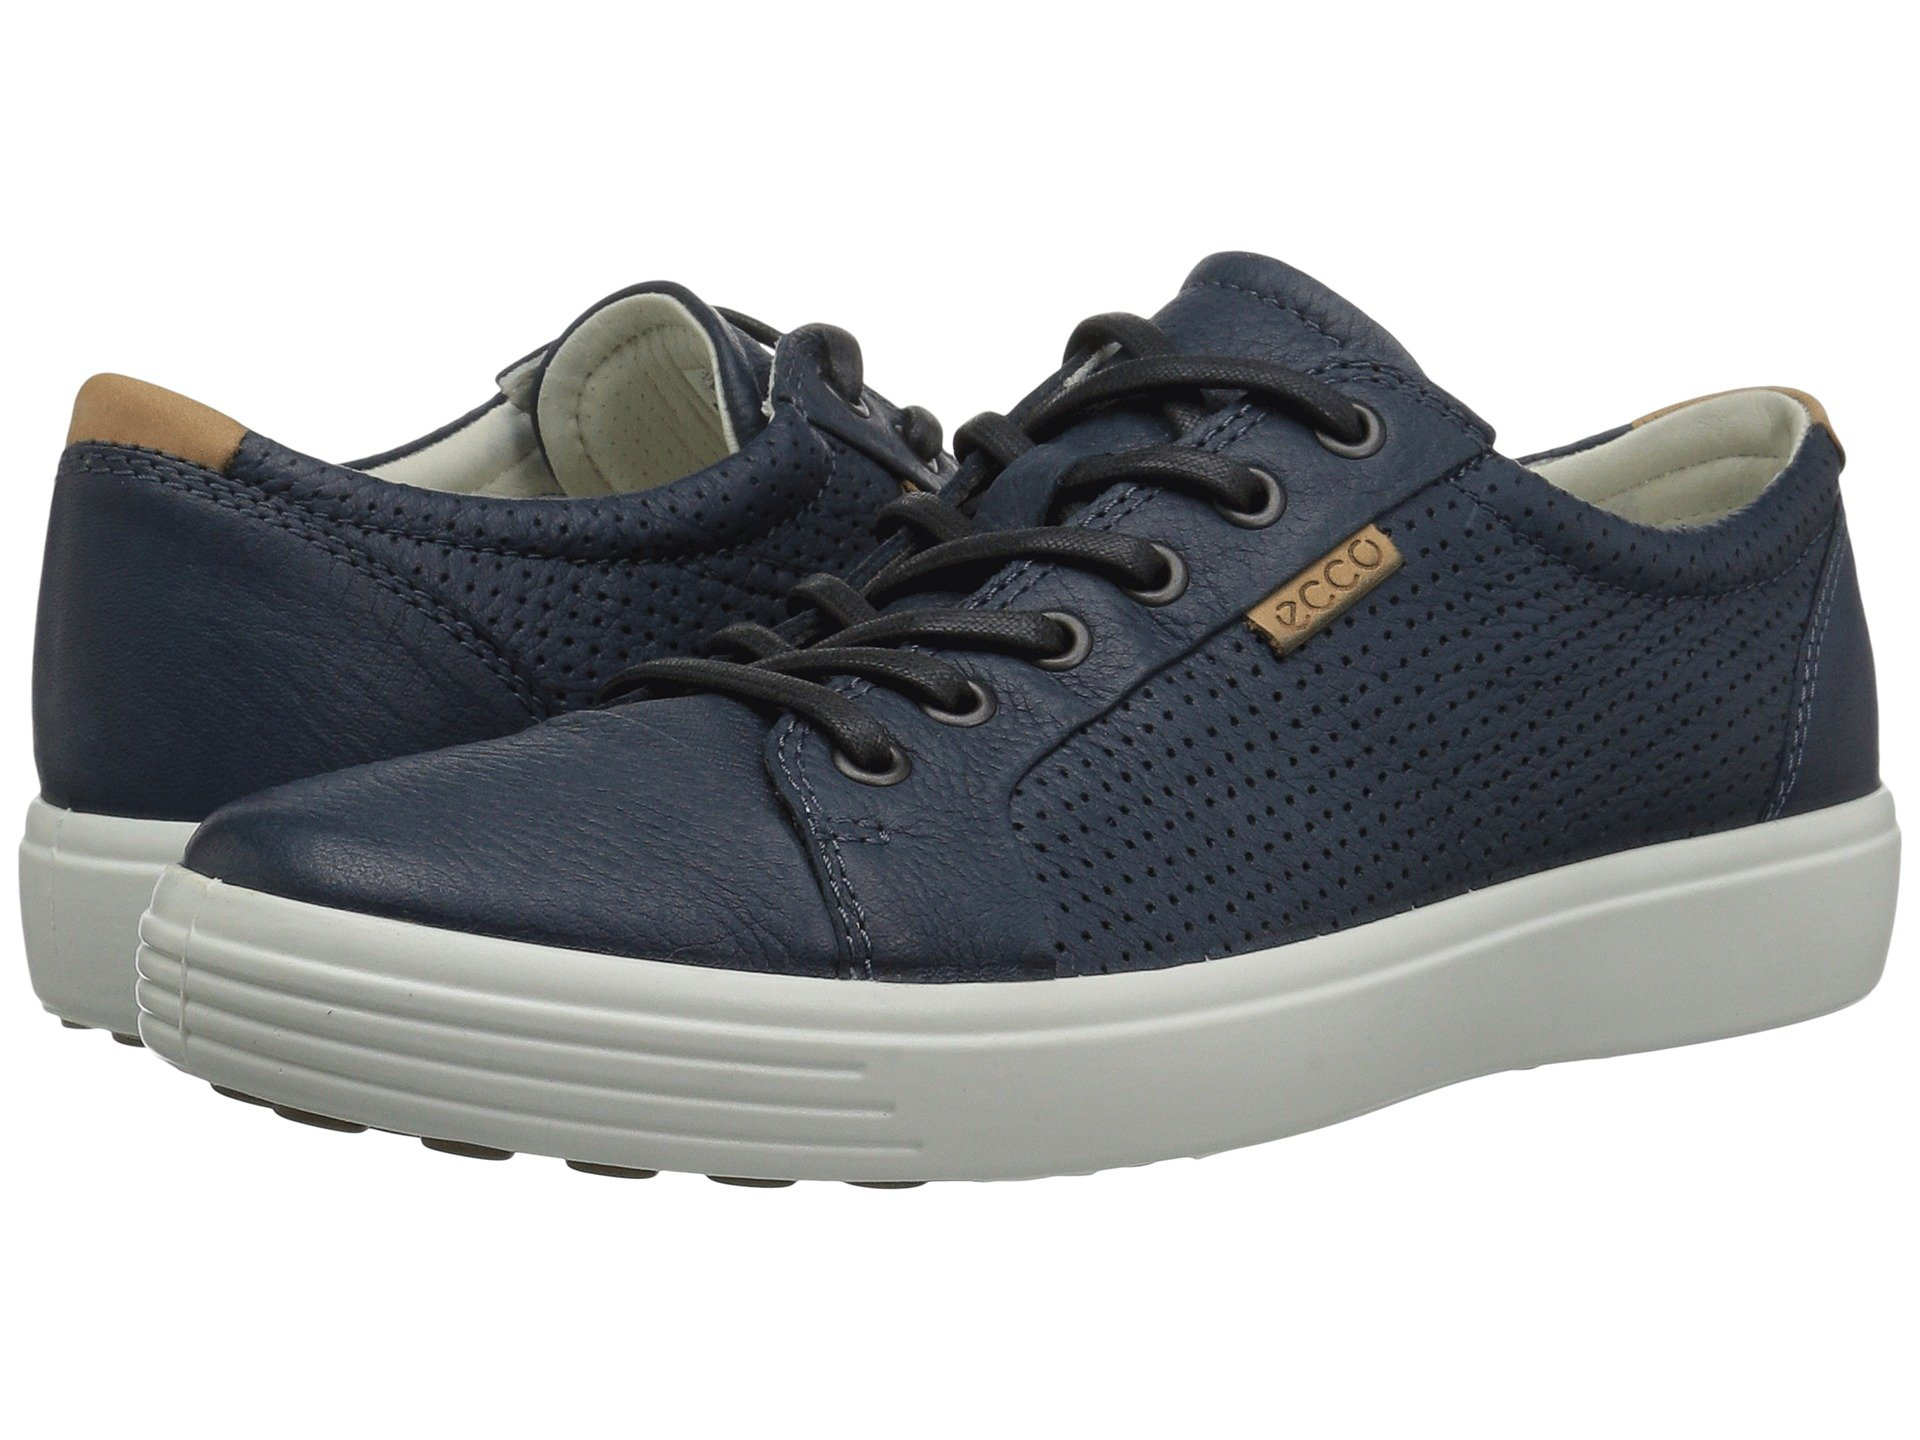 discount ecco mens shoes